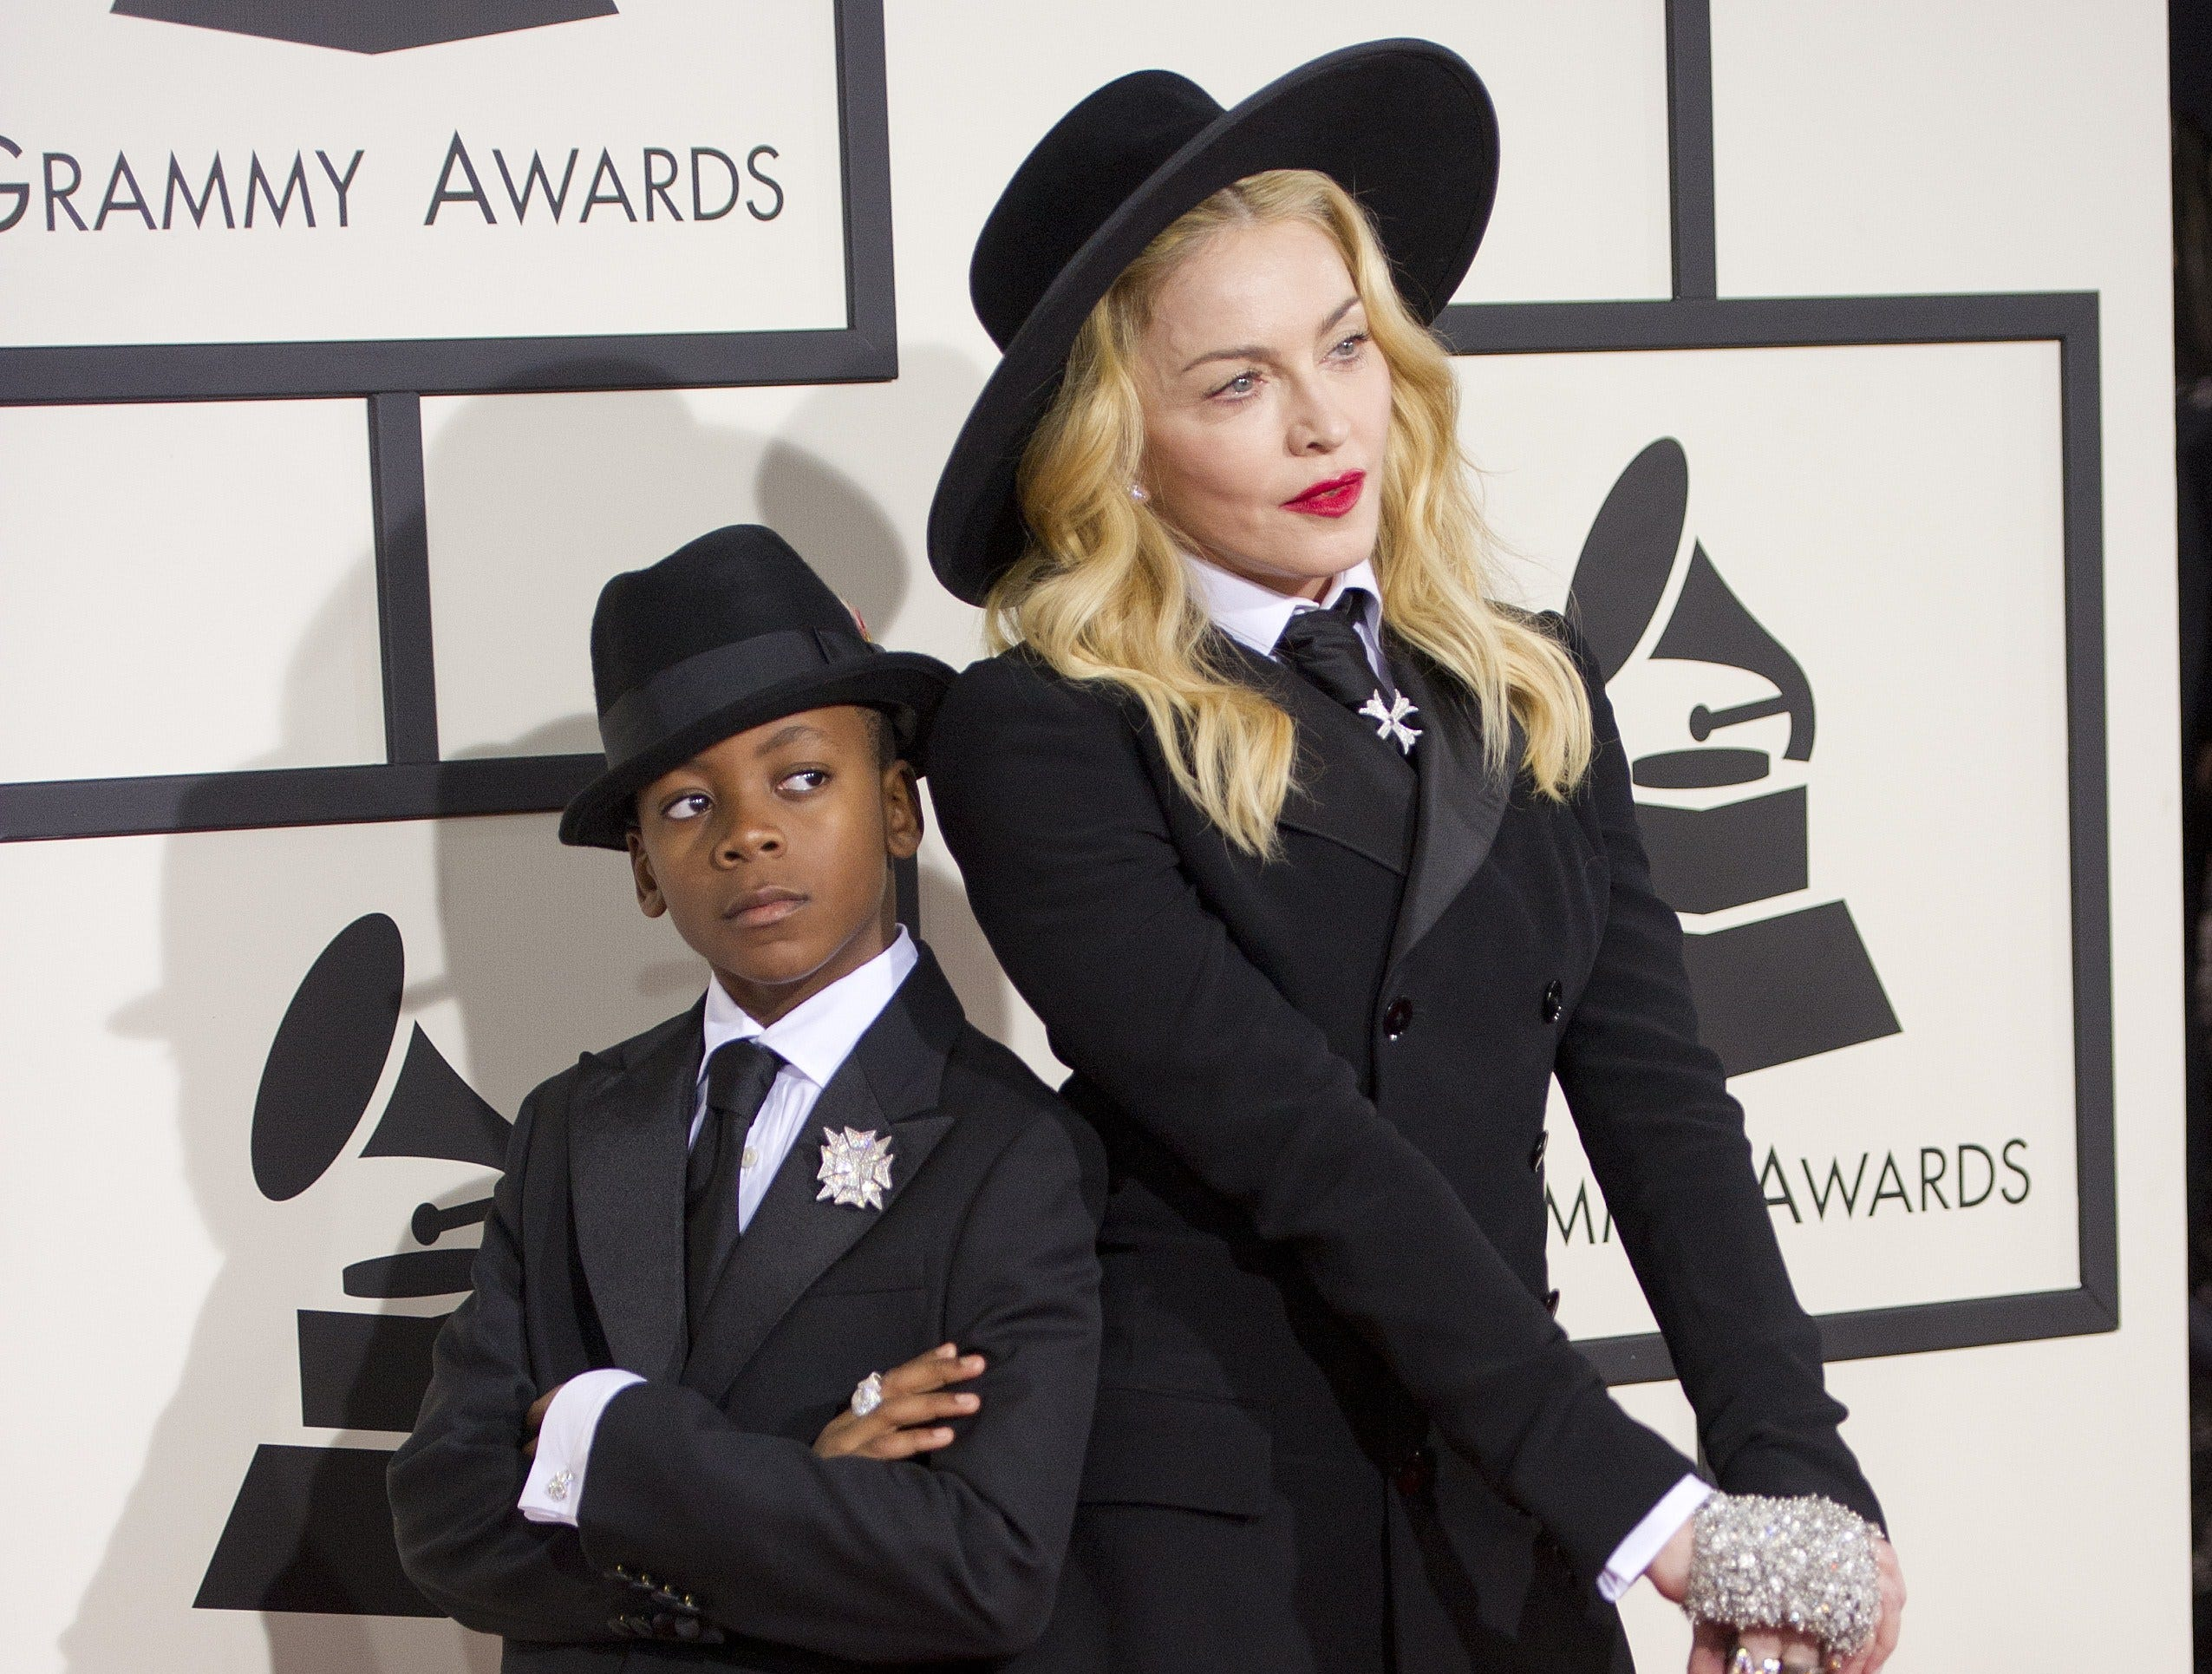 Madonna and son David Banda pose on the red carpet for the 56th Grammy Awards at the Staples Center in Los Angeles on January 26, 2014.